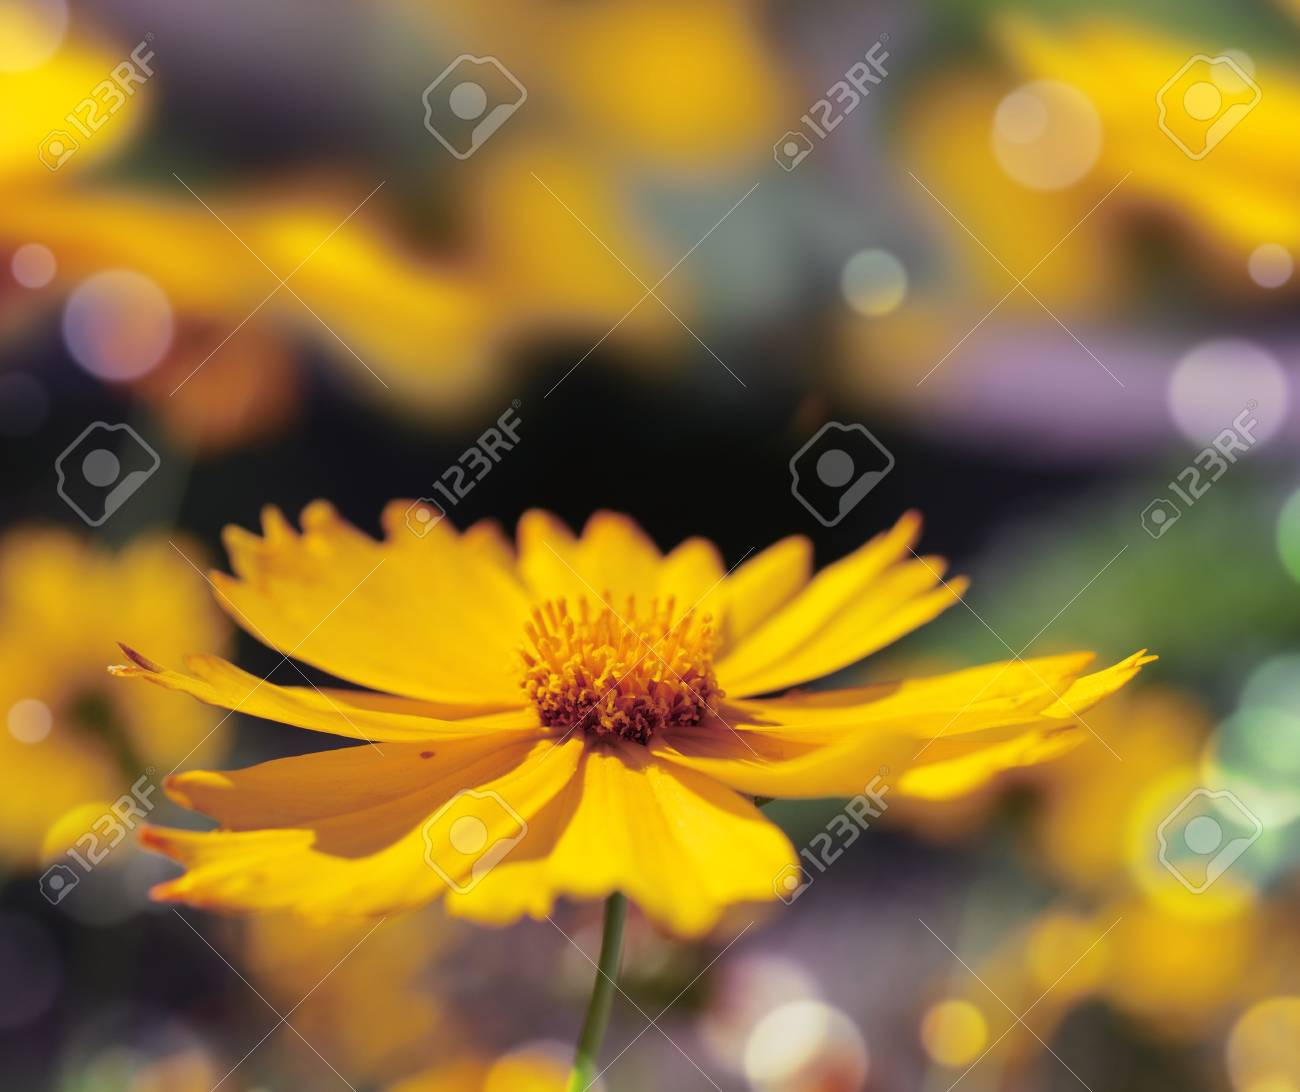 yellow flower on a colored background Stock Photo - 14294533